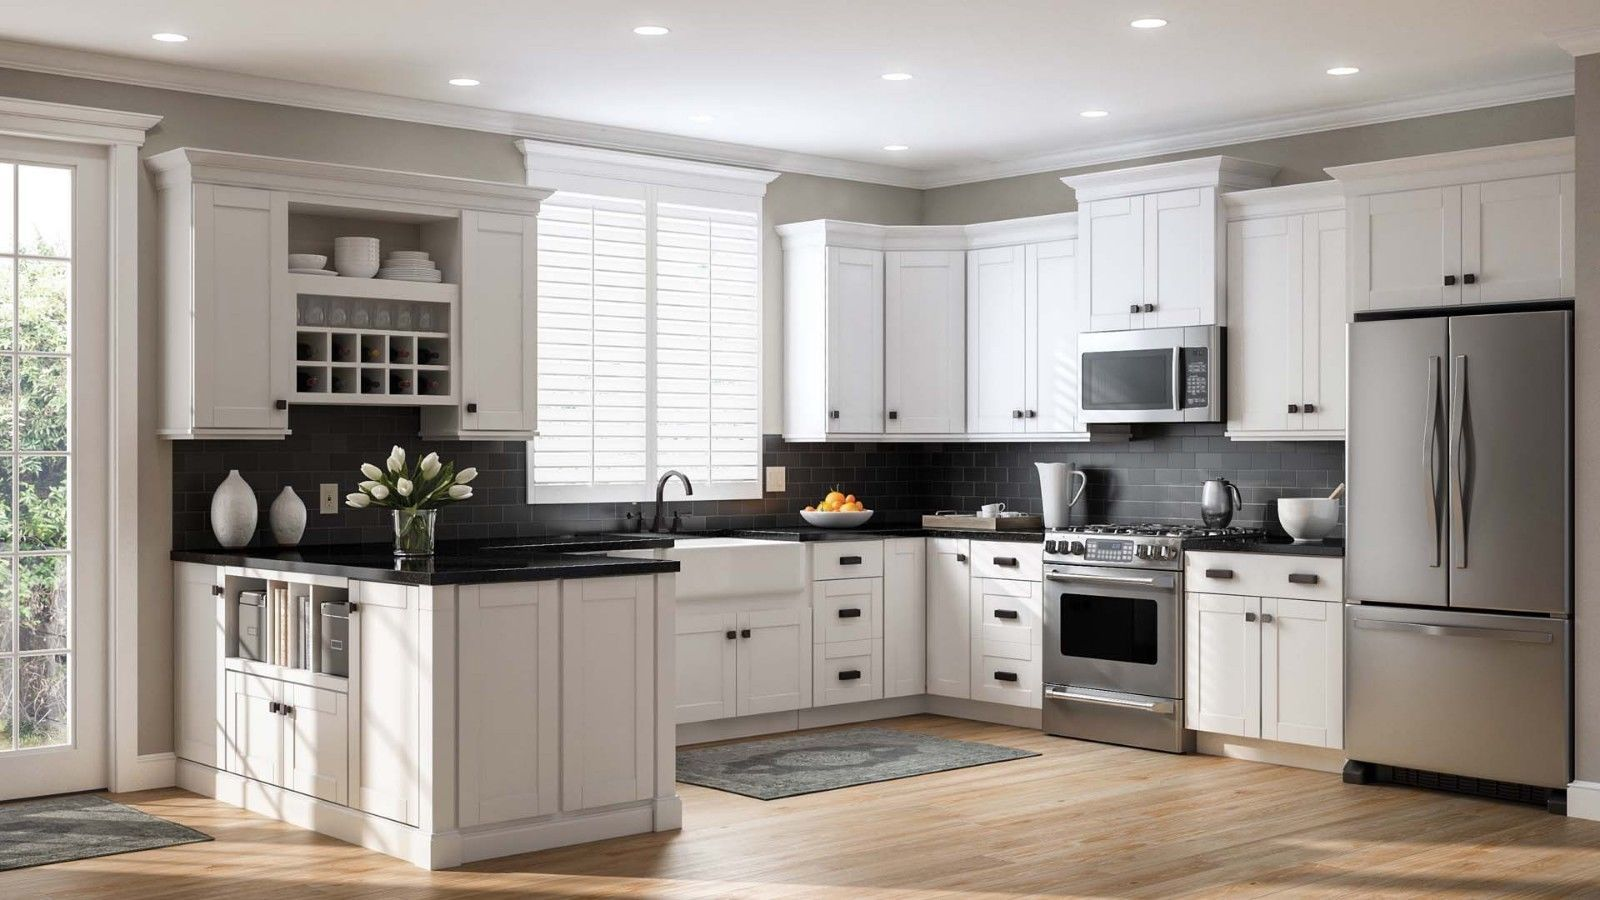 10 X10 White Shaker Solid Maple Wood Kitchen Cabinets 5 8